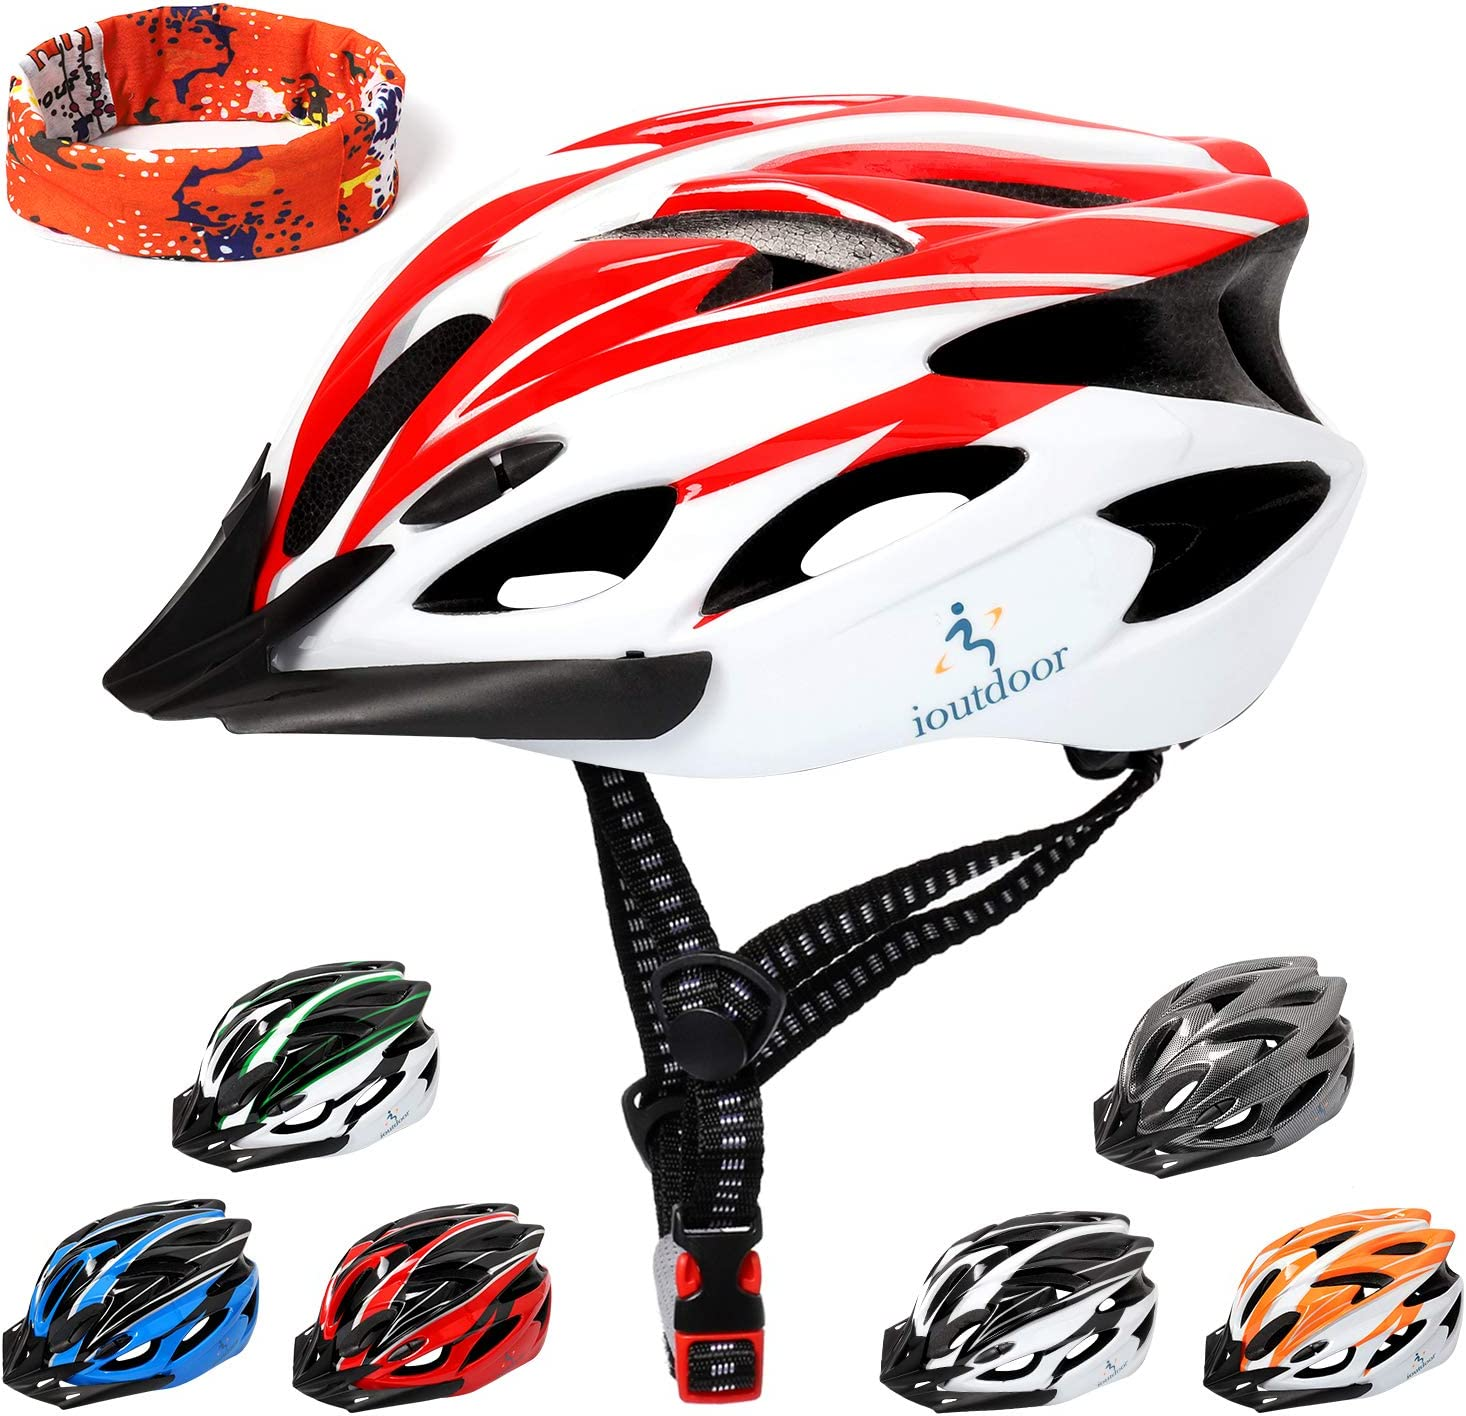 ioutdoor Lightweight Adult Bike Helmet, CE Certified Cycling Helmet with Sports Headband, Dial-Fit Adjustable Mountain Bike Helmet for Men Women,7 Colors for Choice